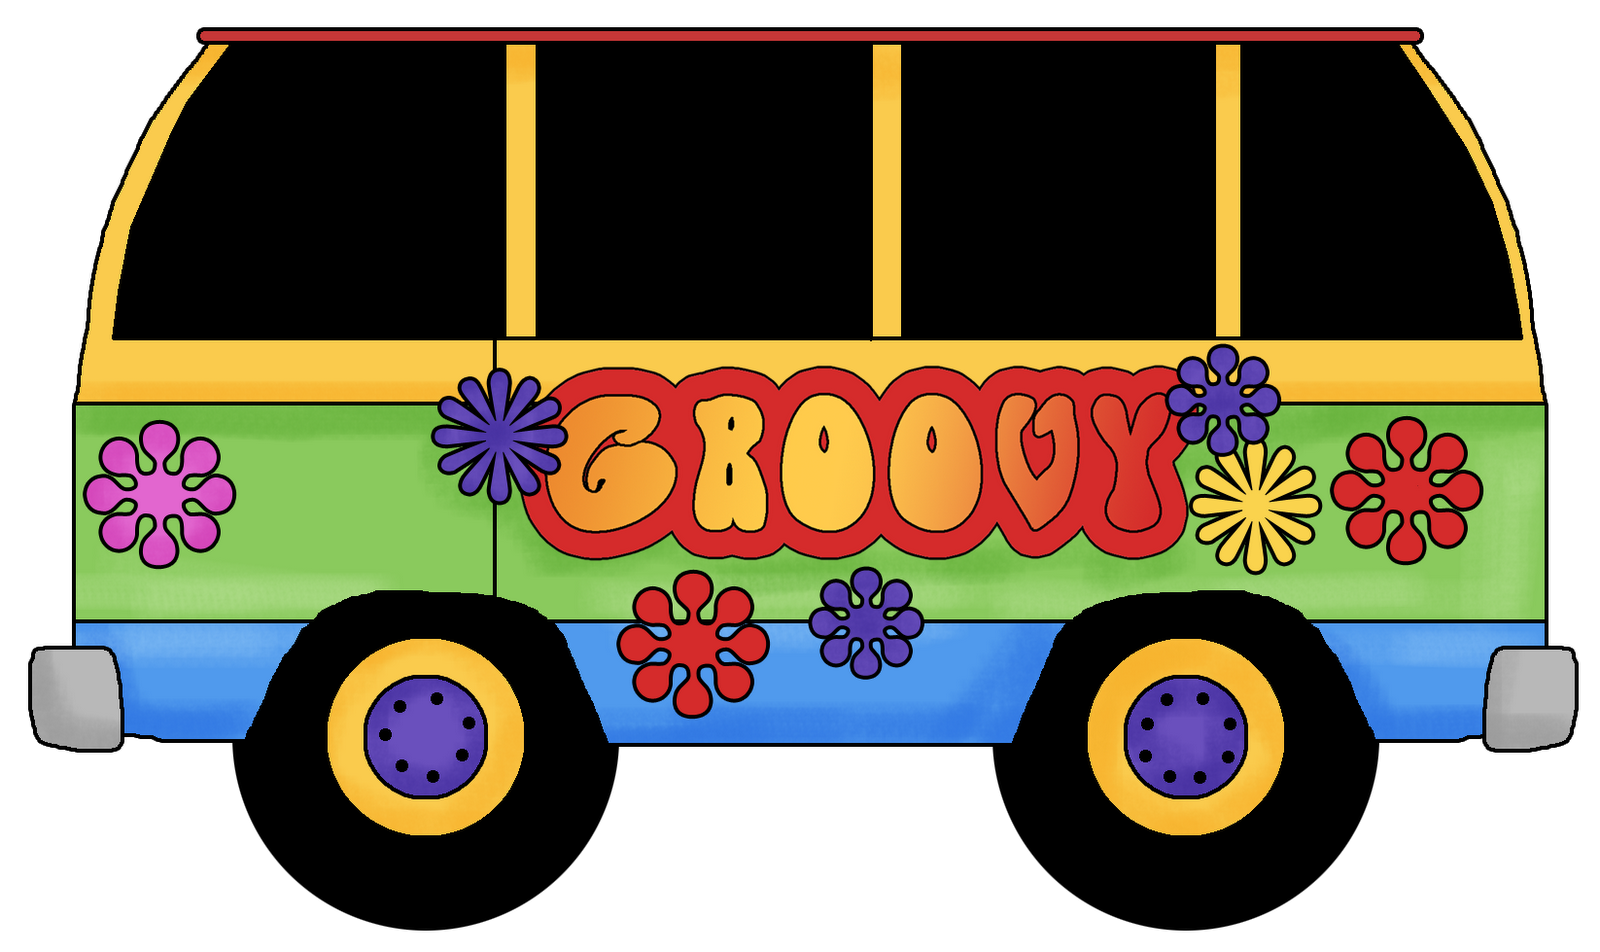 Free Groovy Cliparts, Download Free Clip Art, Free Clip Art.